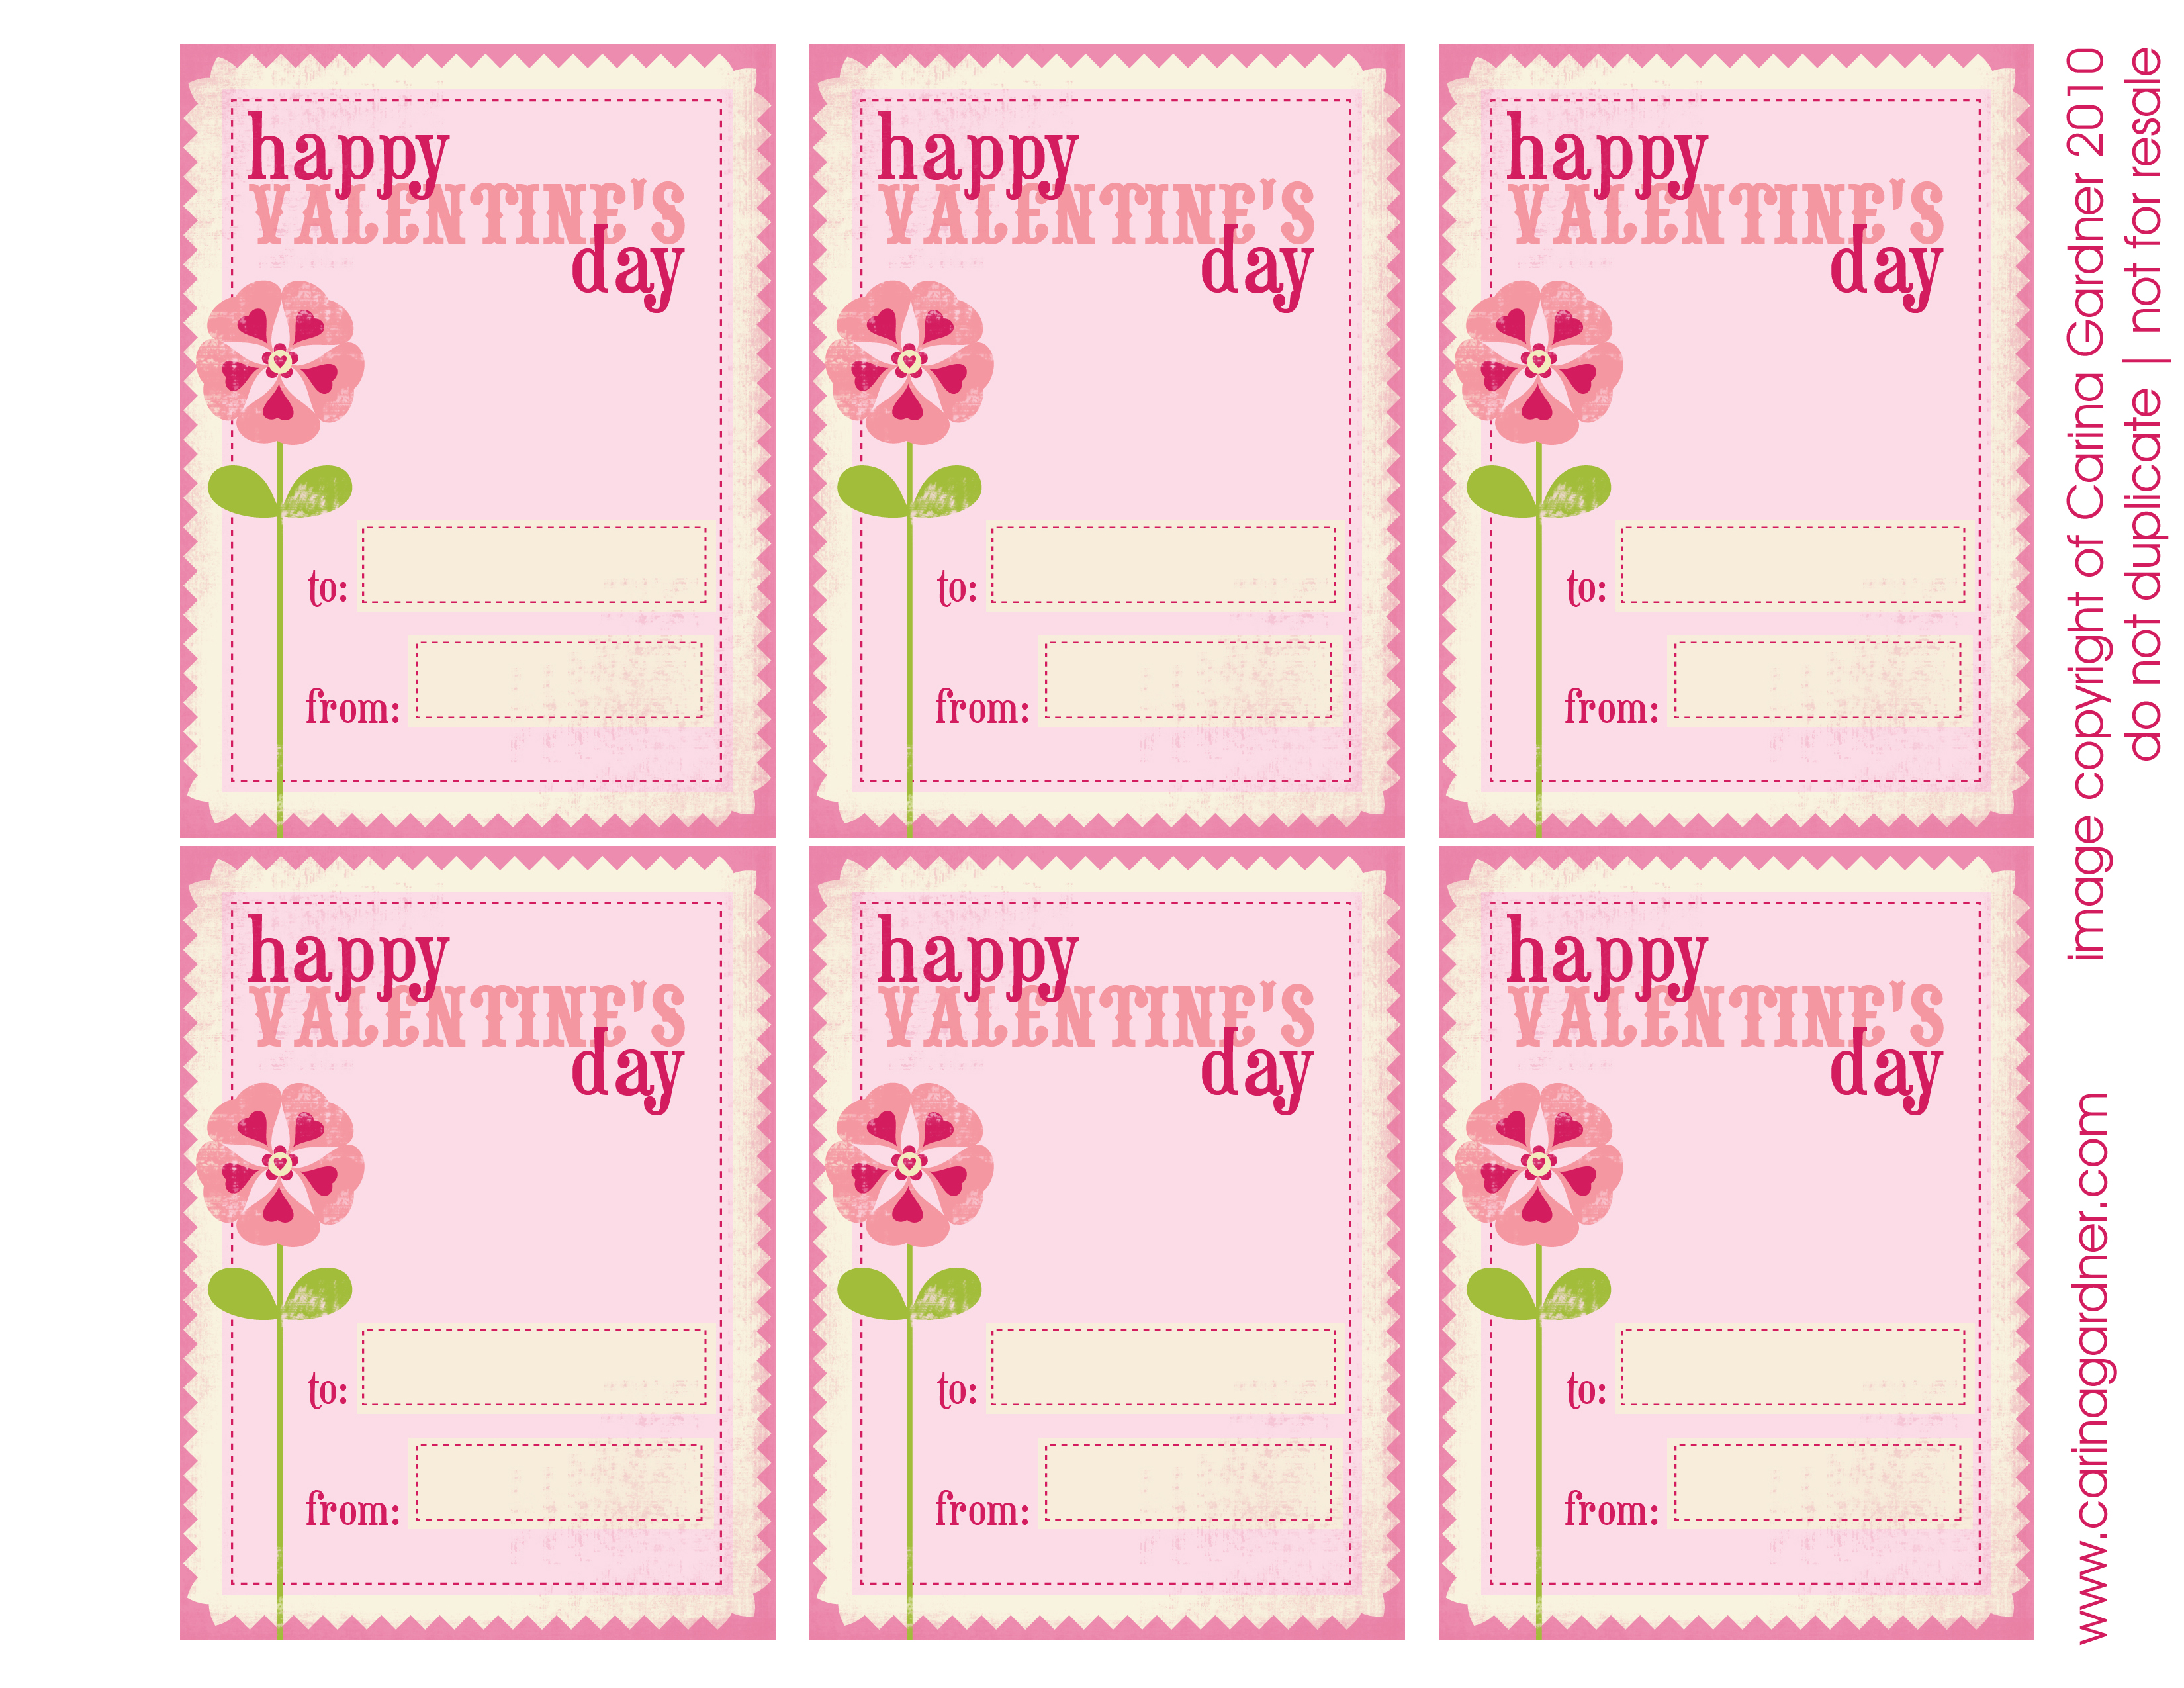 valentine's day card for kids-free download |, Ideas